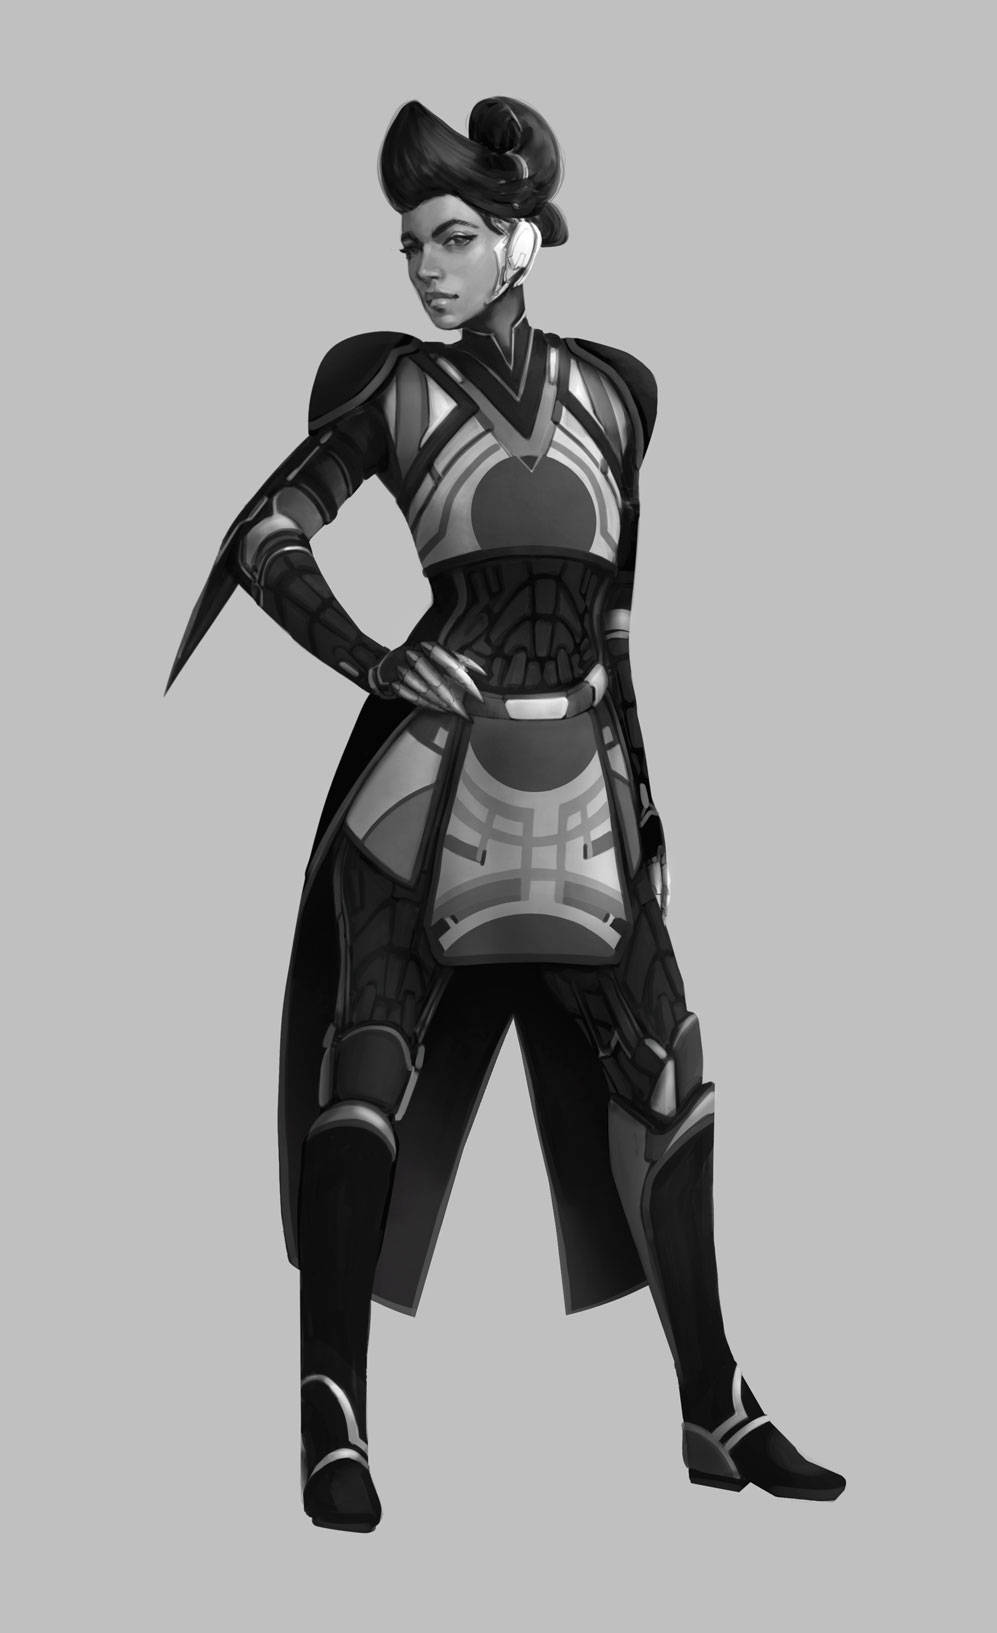 j_strohl_Character4_Before